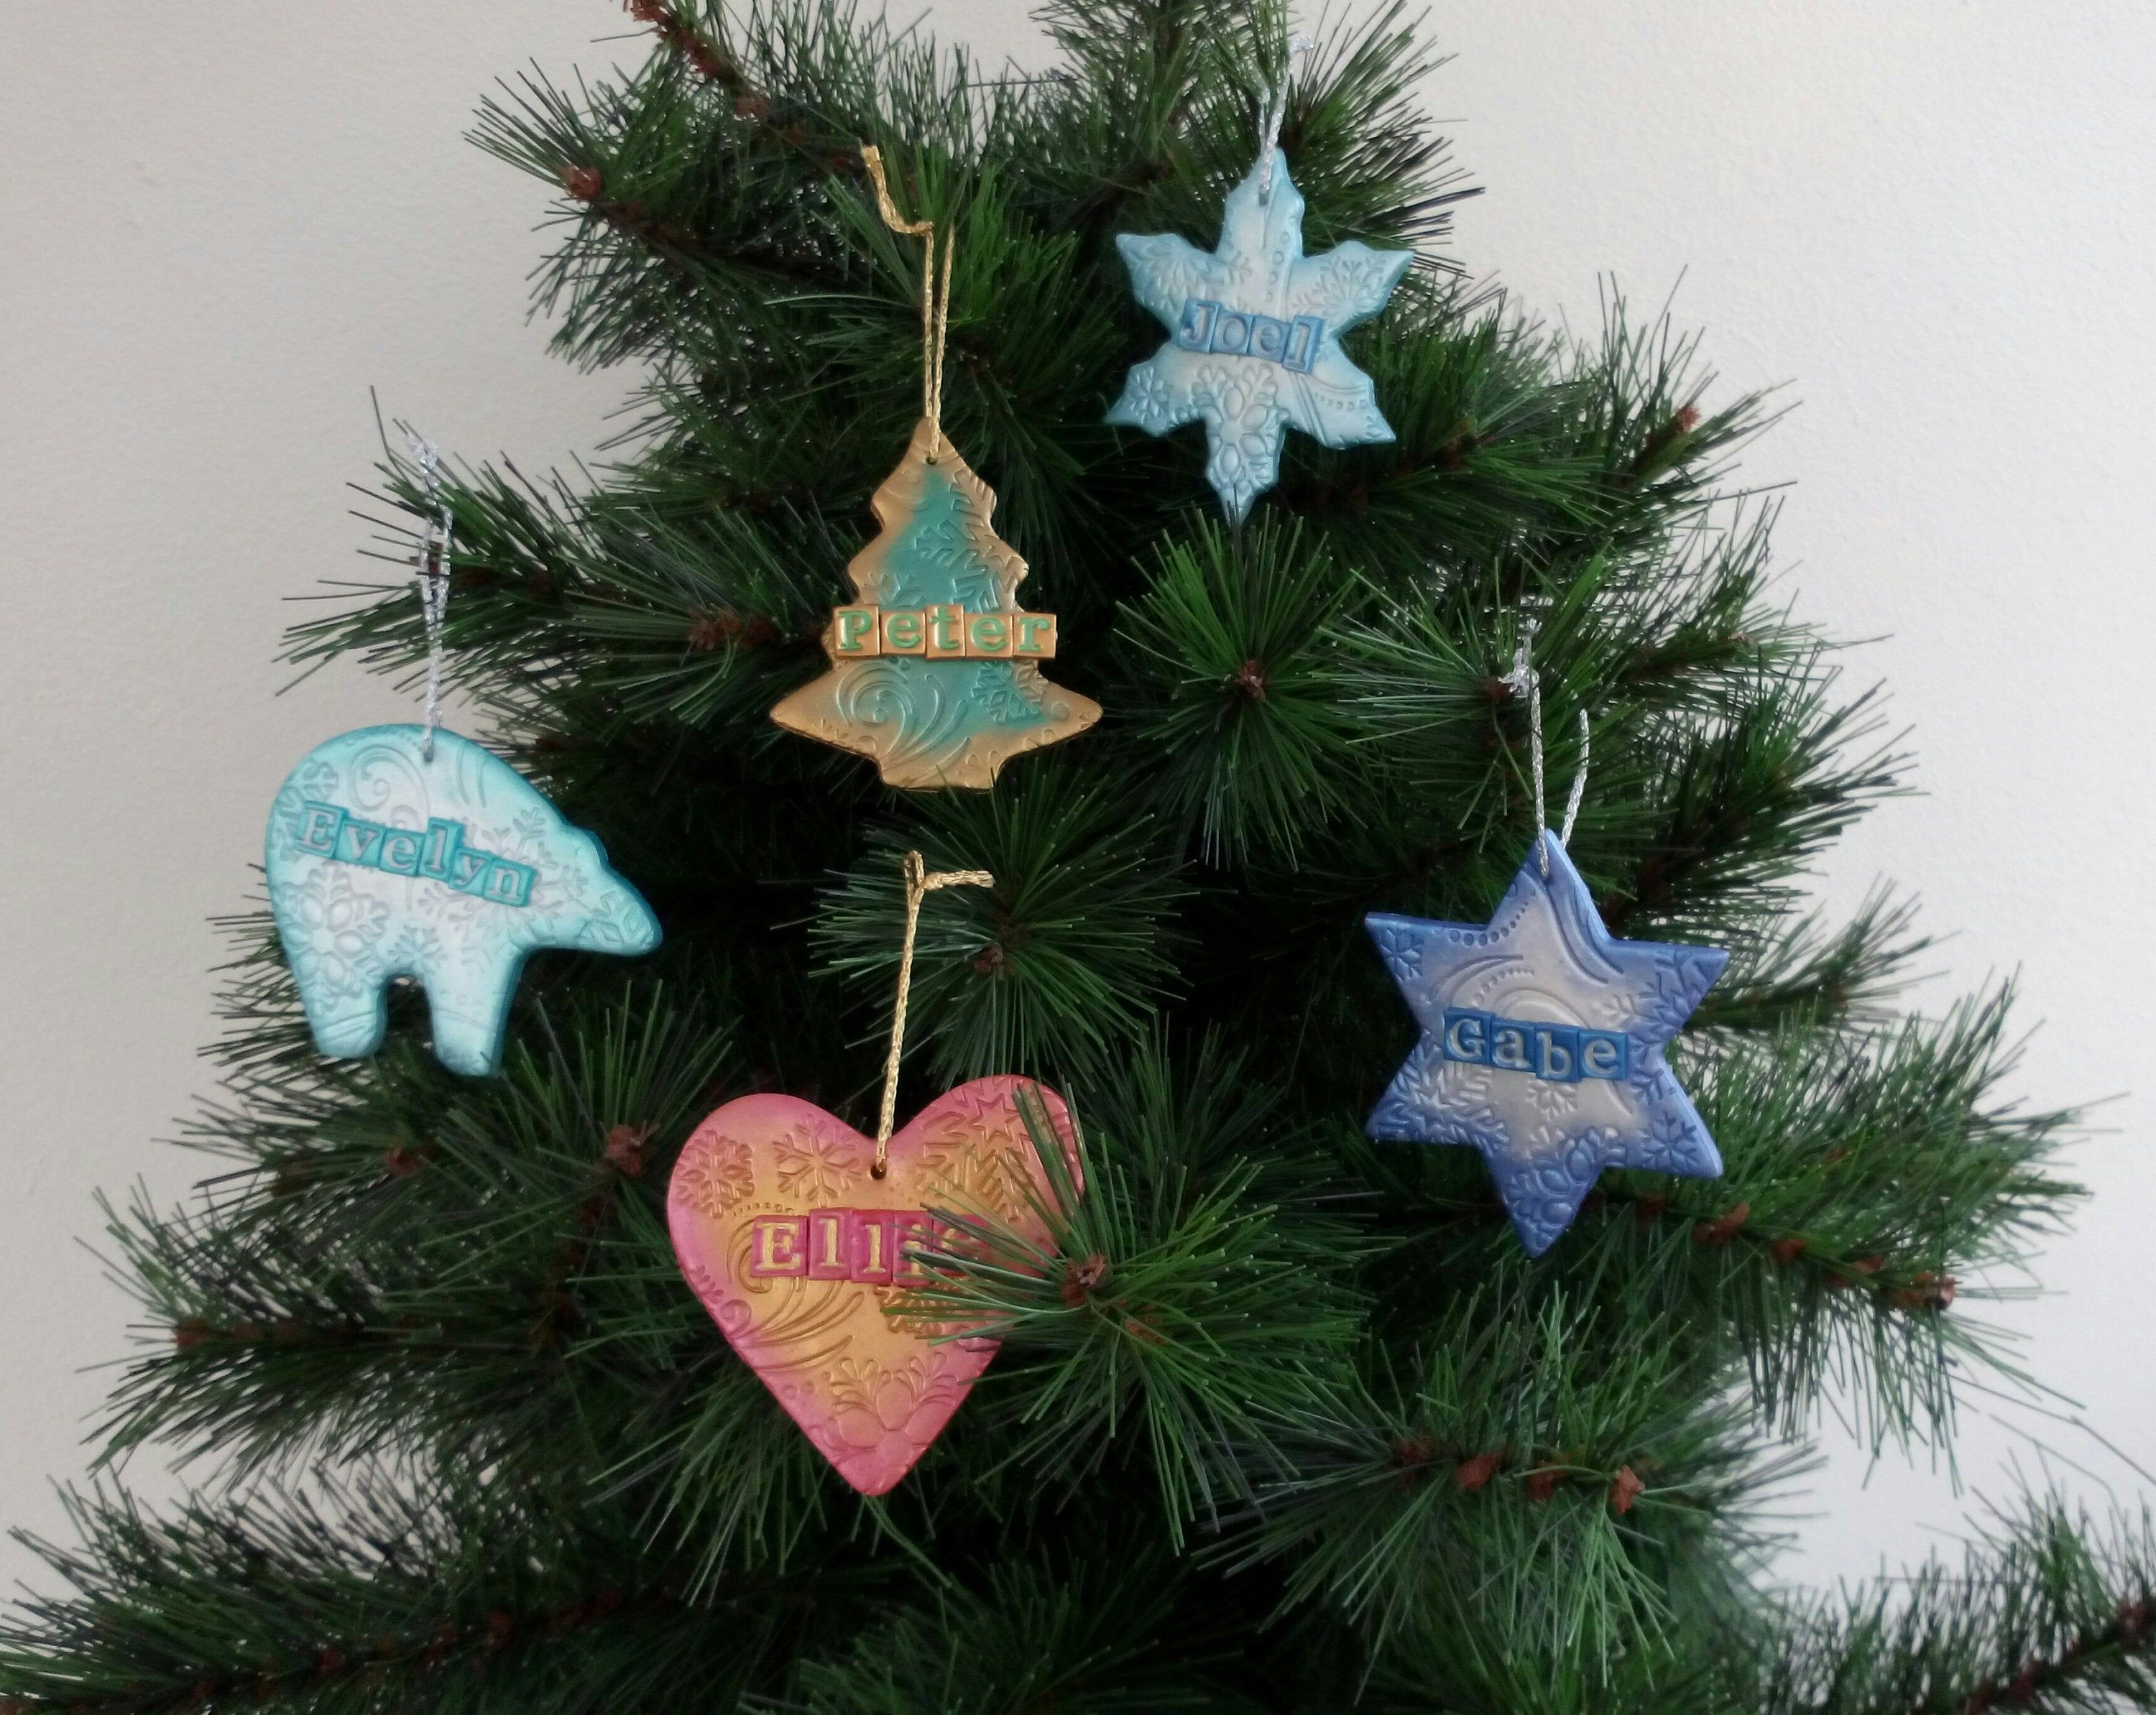 Personalised Hanging Christmas Tree Decorations Star Heart Etsy In 2020 Clay Christmas Decorations Personalised Christmas Tree Decorations Christmas Tree Decorations